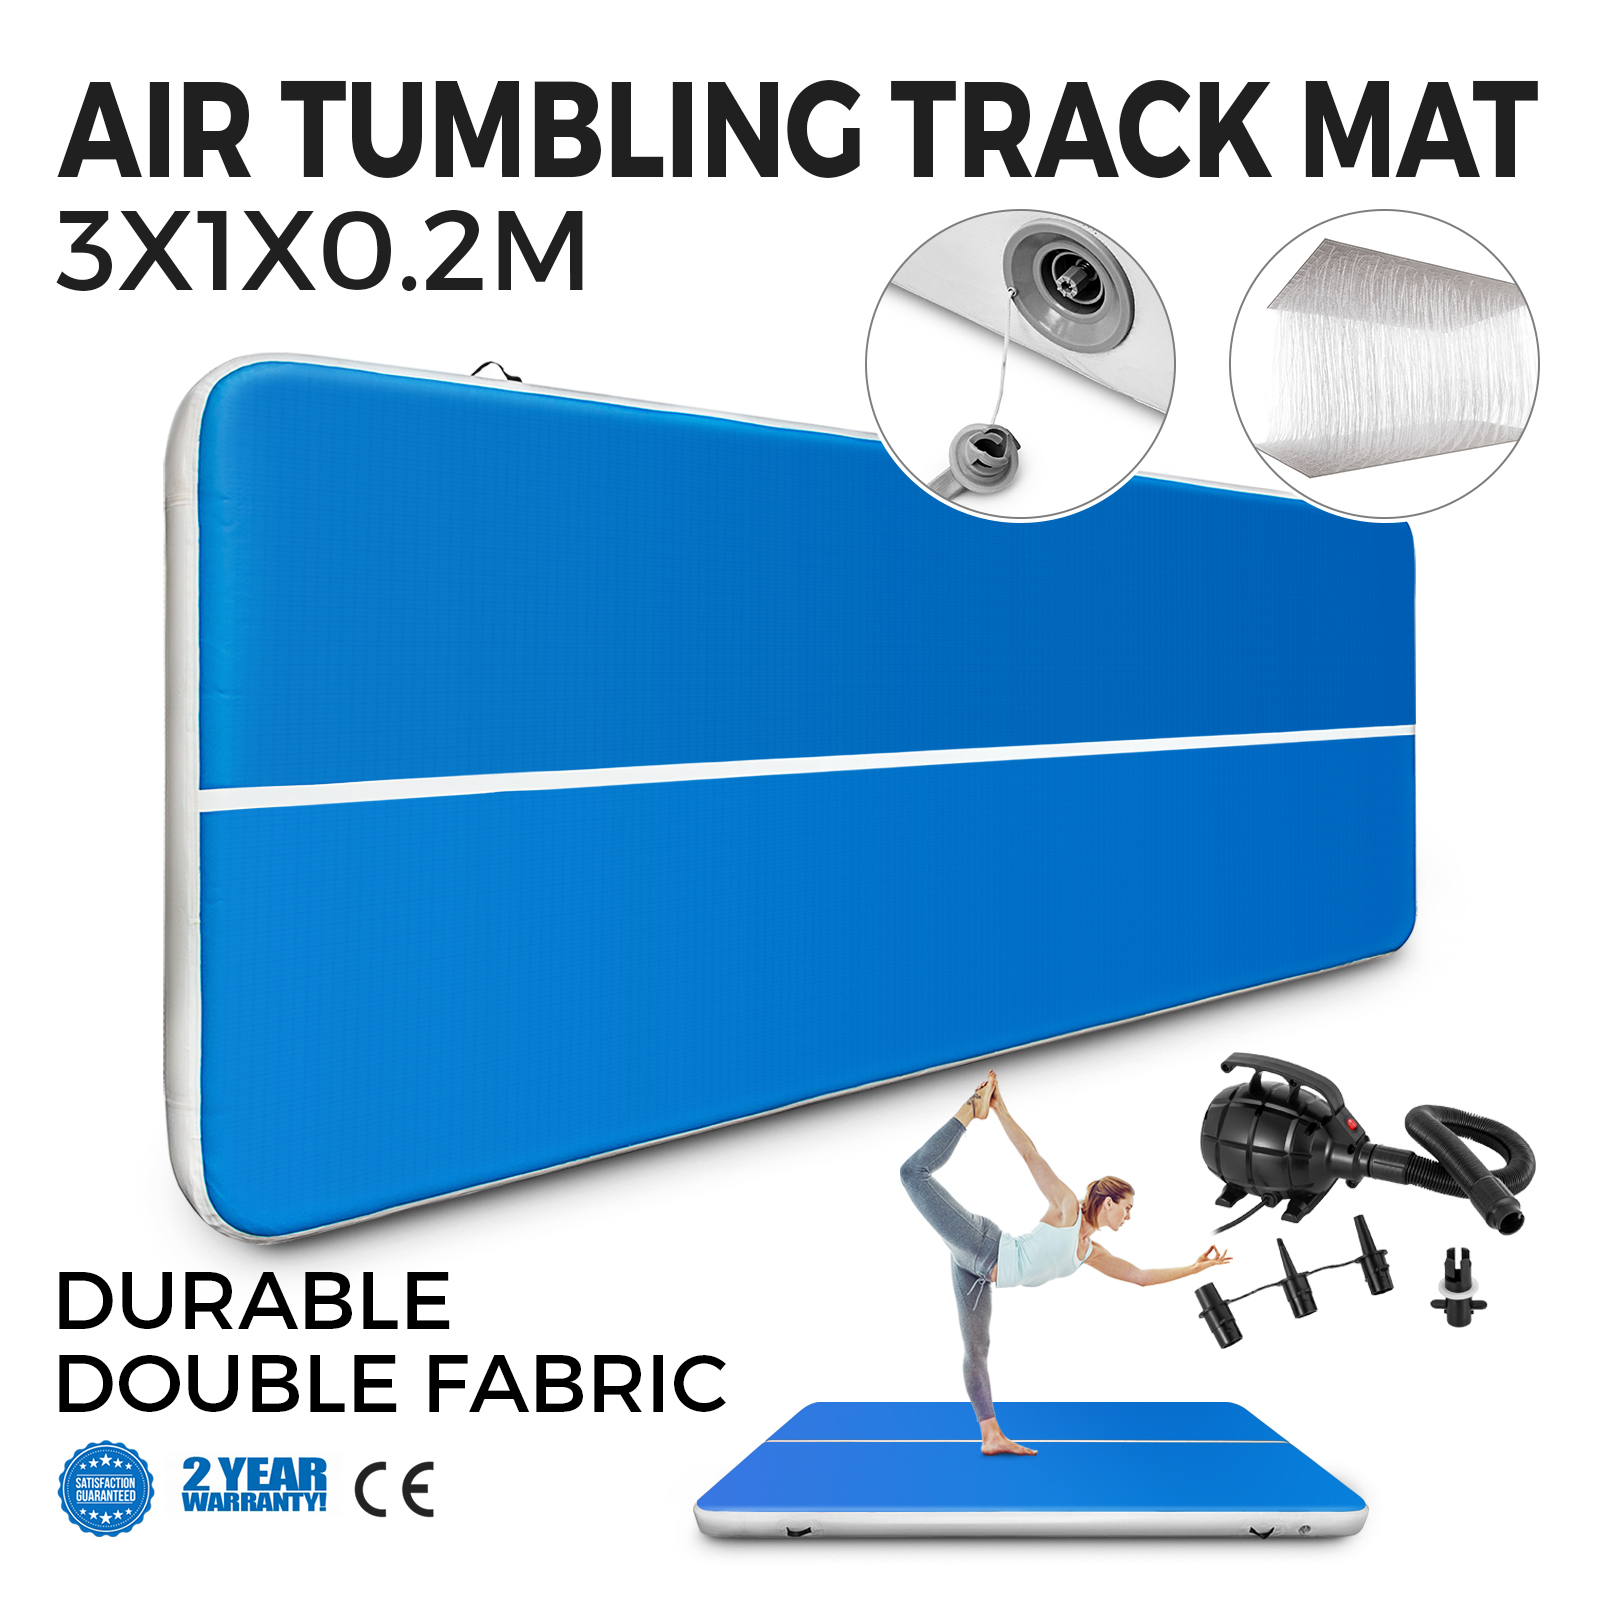 floor inflatable hand mats tumbling product tracks mat air for detailed photos more with gymnastics pump home